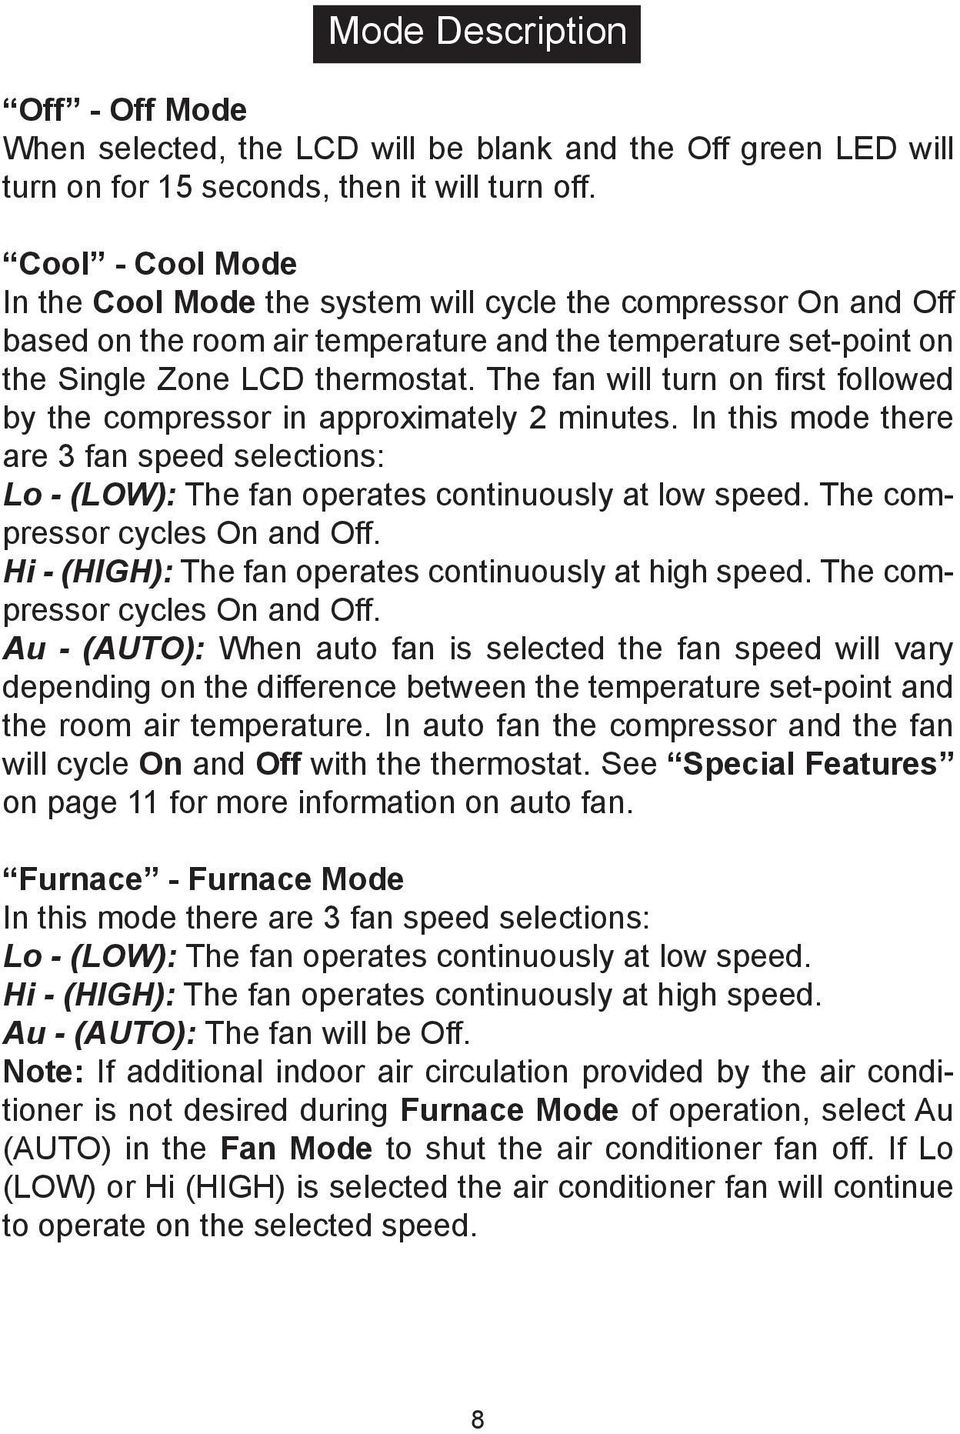 The fan will turn on first followed by the compressor in approximately 2 minutes. In this mode there are 3 fan speed selections: Lo - (LOW): The fan operates continuously at low speed.